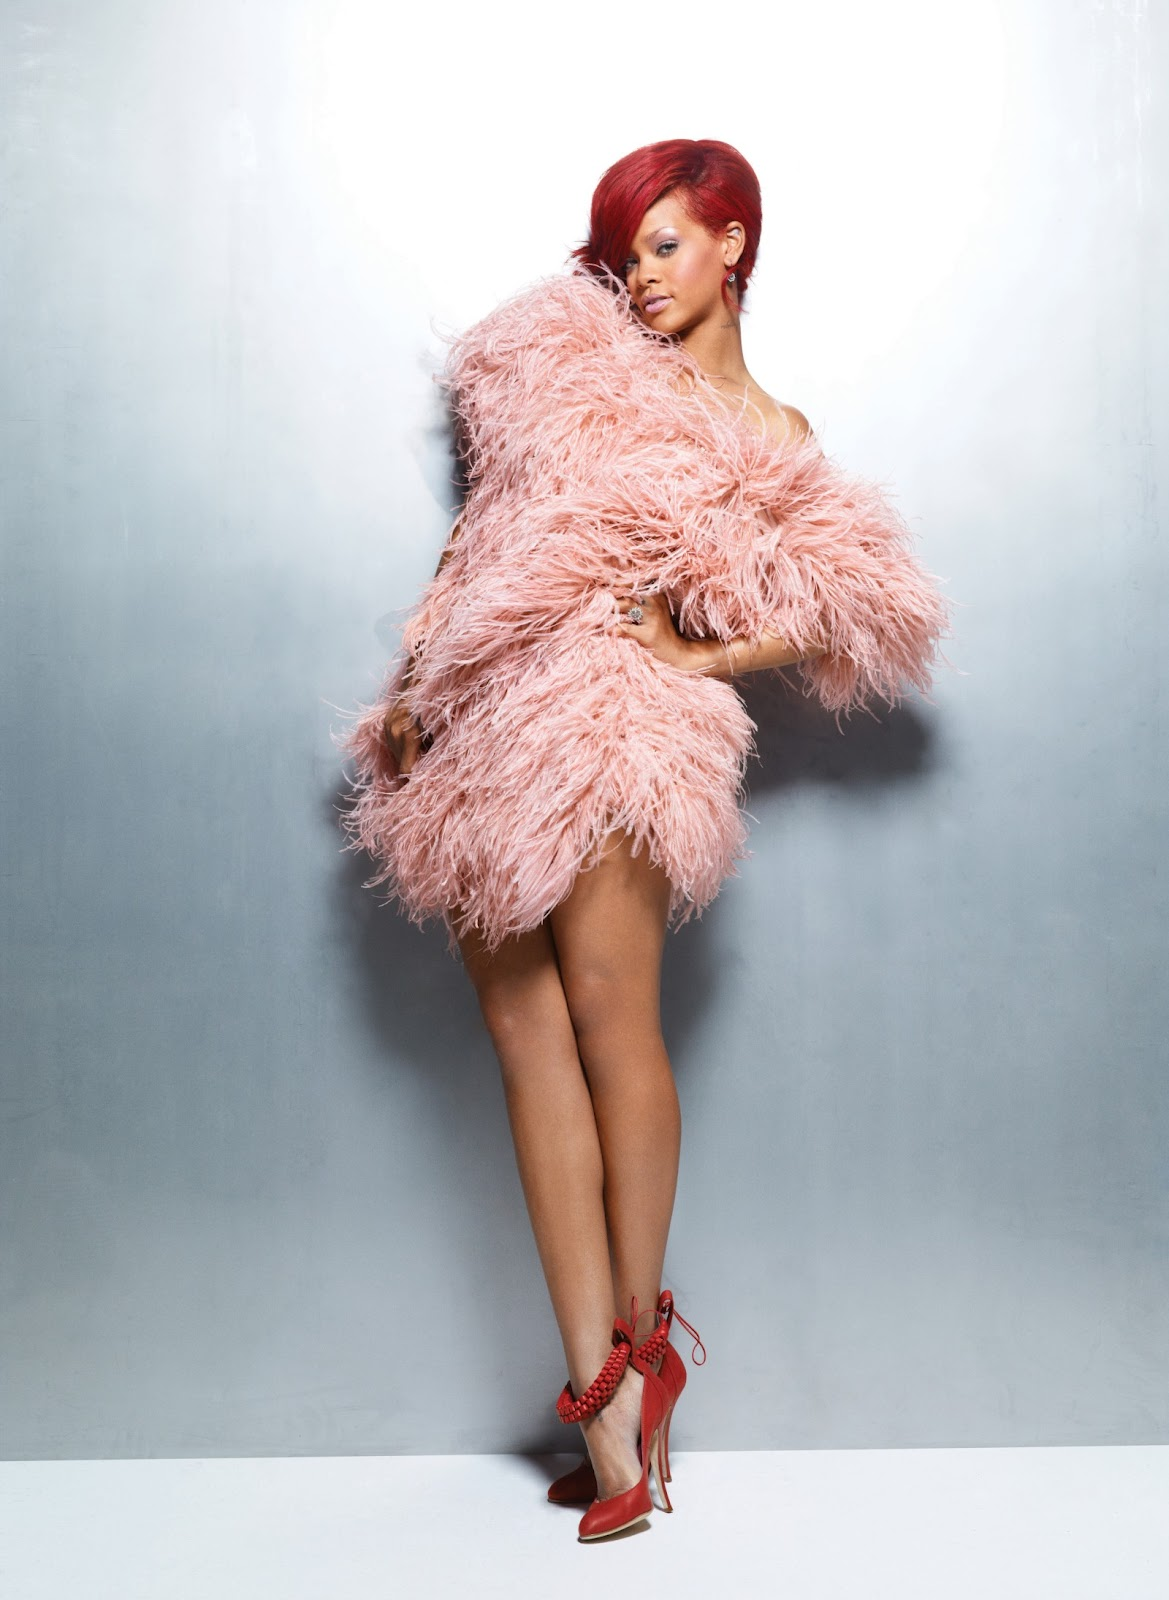 rihanna red hairstyle pictures rihanna red hairstyle pictures